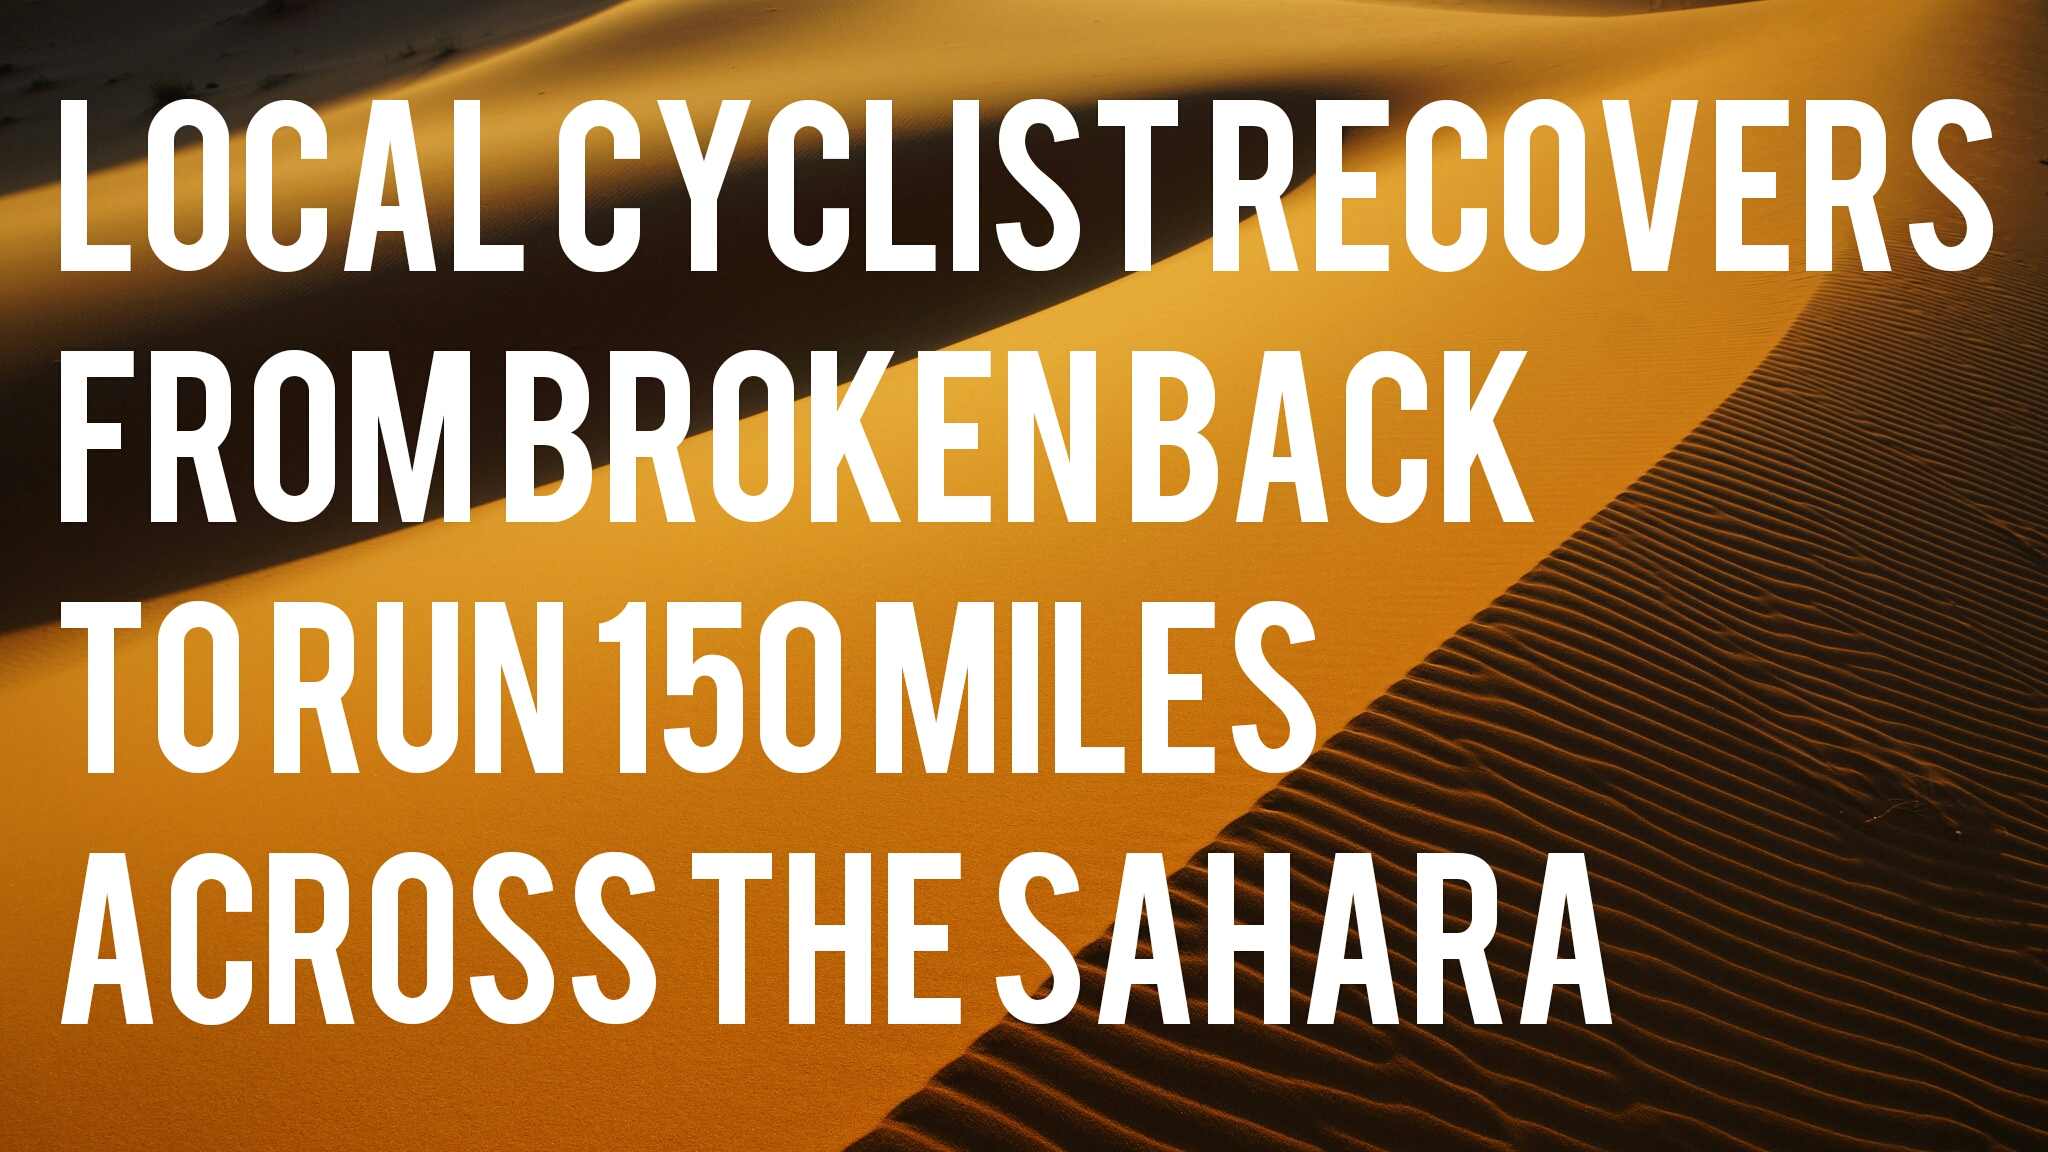 Local Cyclist Recovers from Broken Back to Run 150 Miles across the Sahara